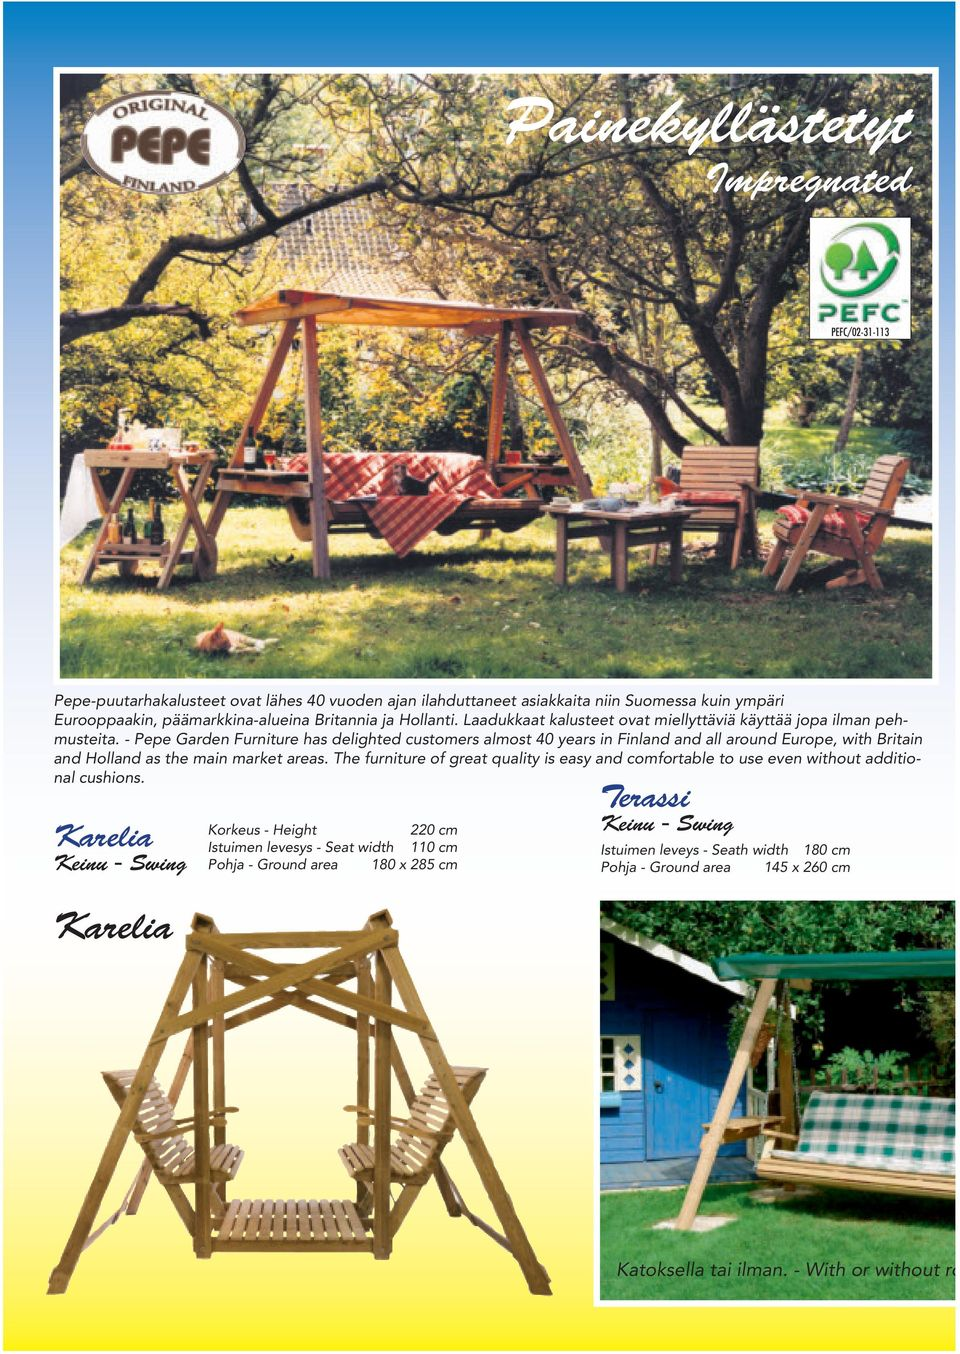 - Pepe Garden Furniture has delighted customers almost 40 years in Finland and all around Europe, with Britain and Holland as the main market areas.